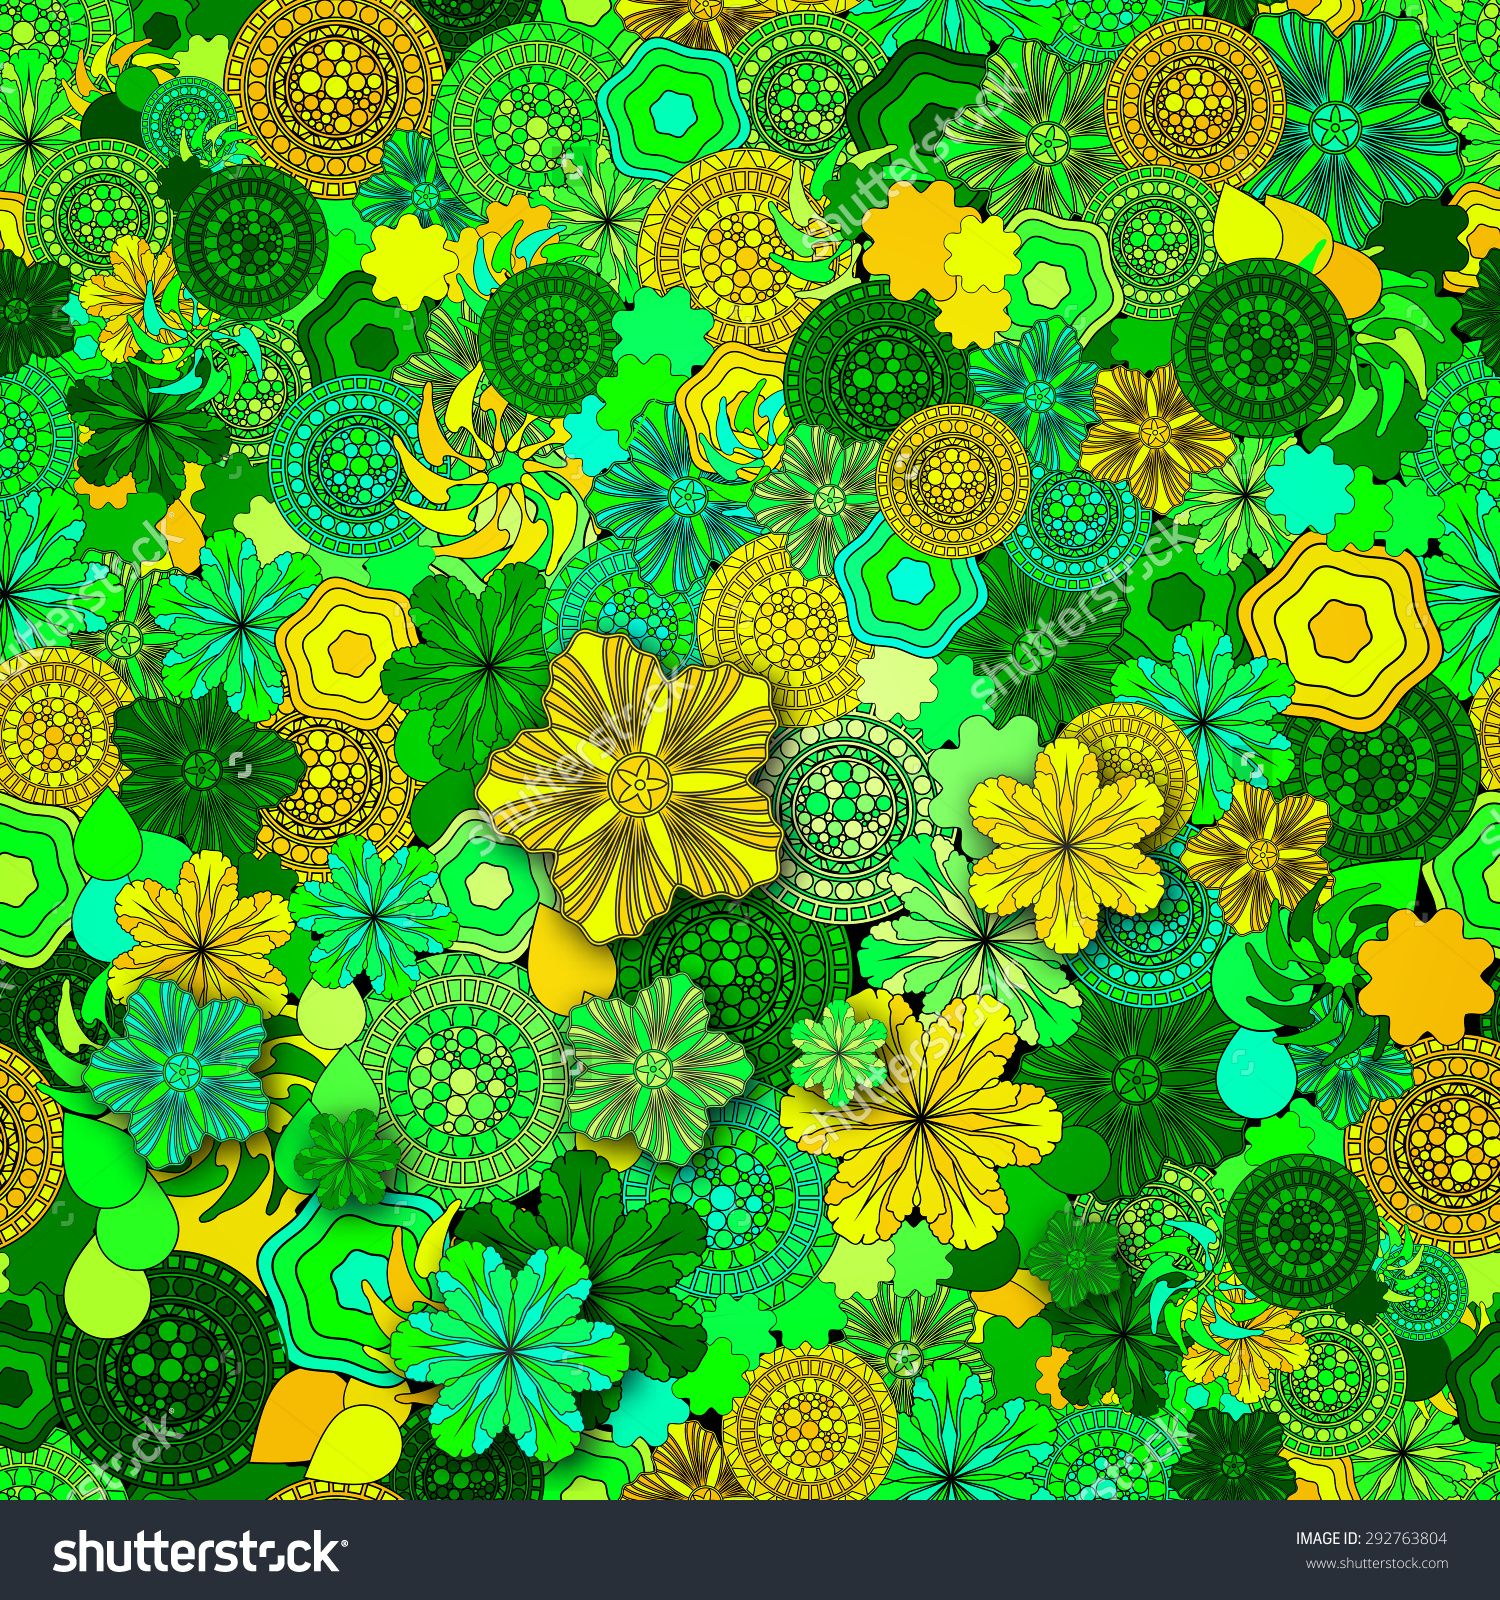 Seamless Abstract Hand Drawn Pattern Floral Background Summer Flowers Elegant Can Be Used For Wallpaper Fills